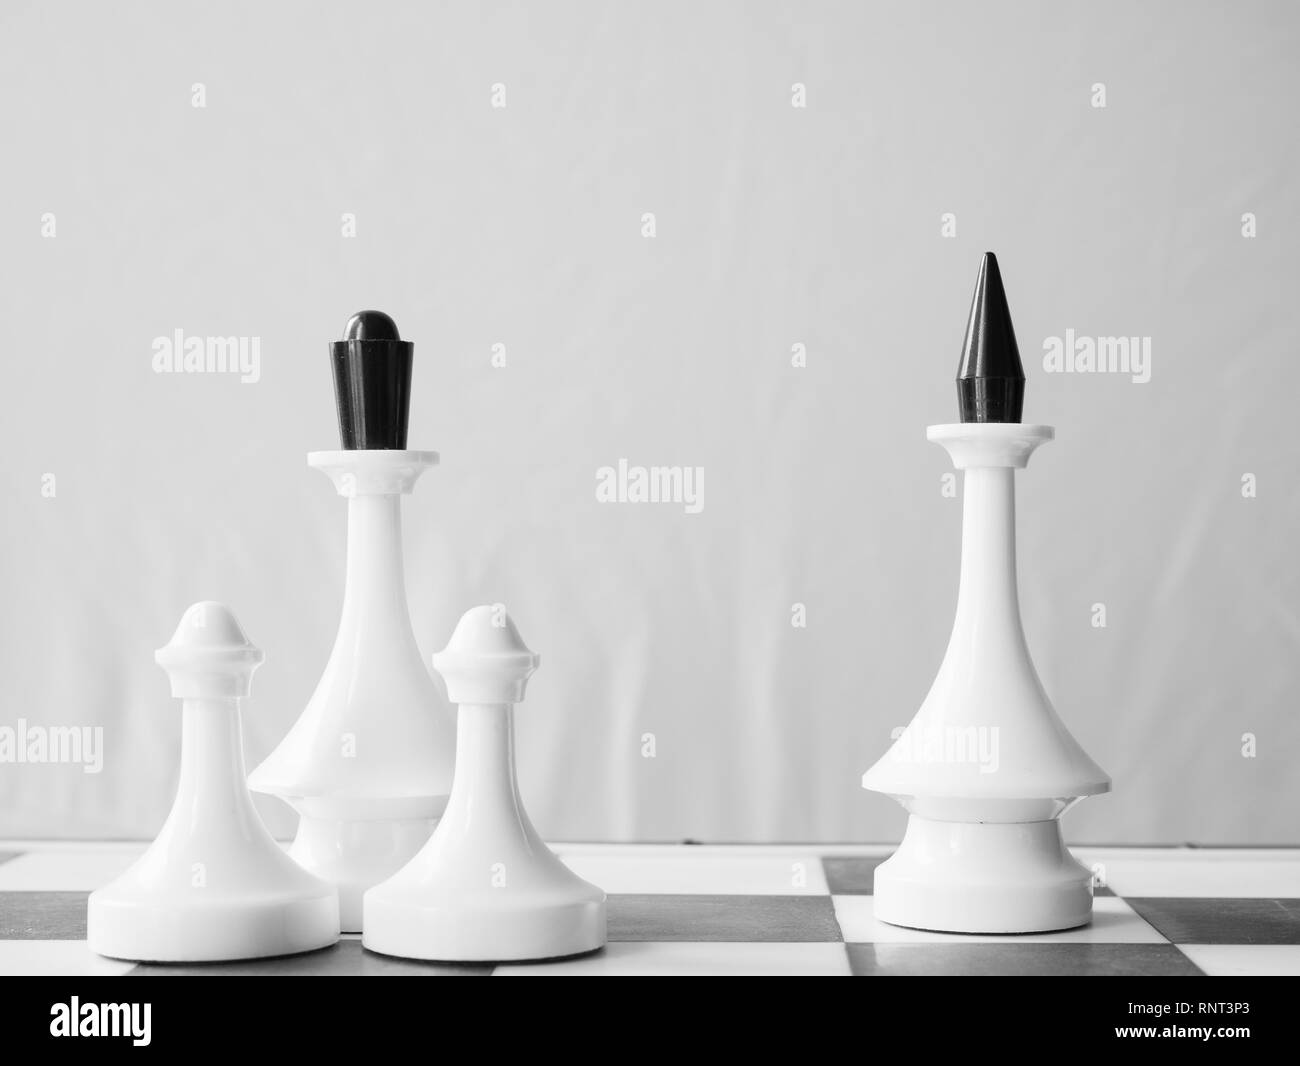 chessman king and queens with few pawns on different parts of shess board. depict family divorce when children stay with mother - Stock Image